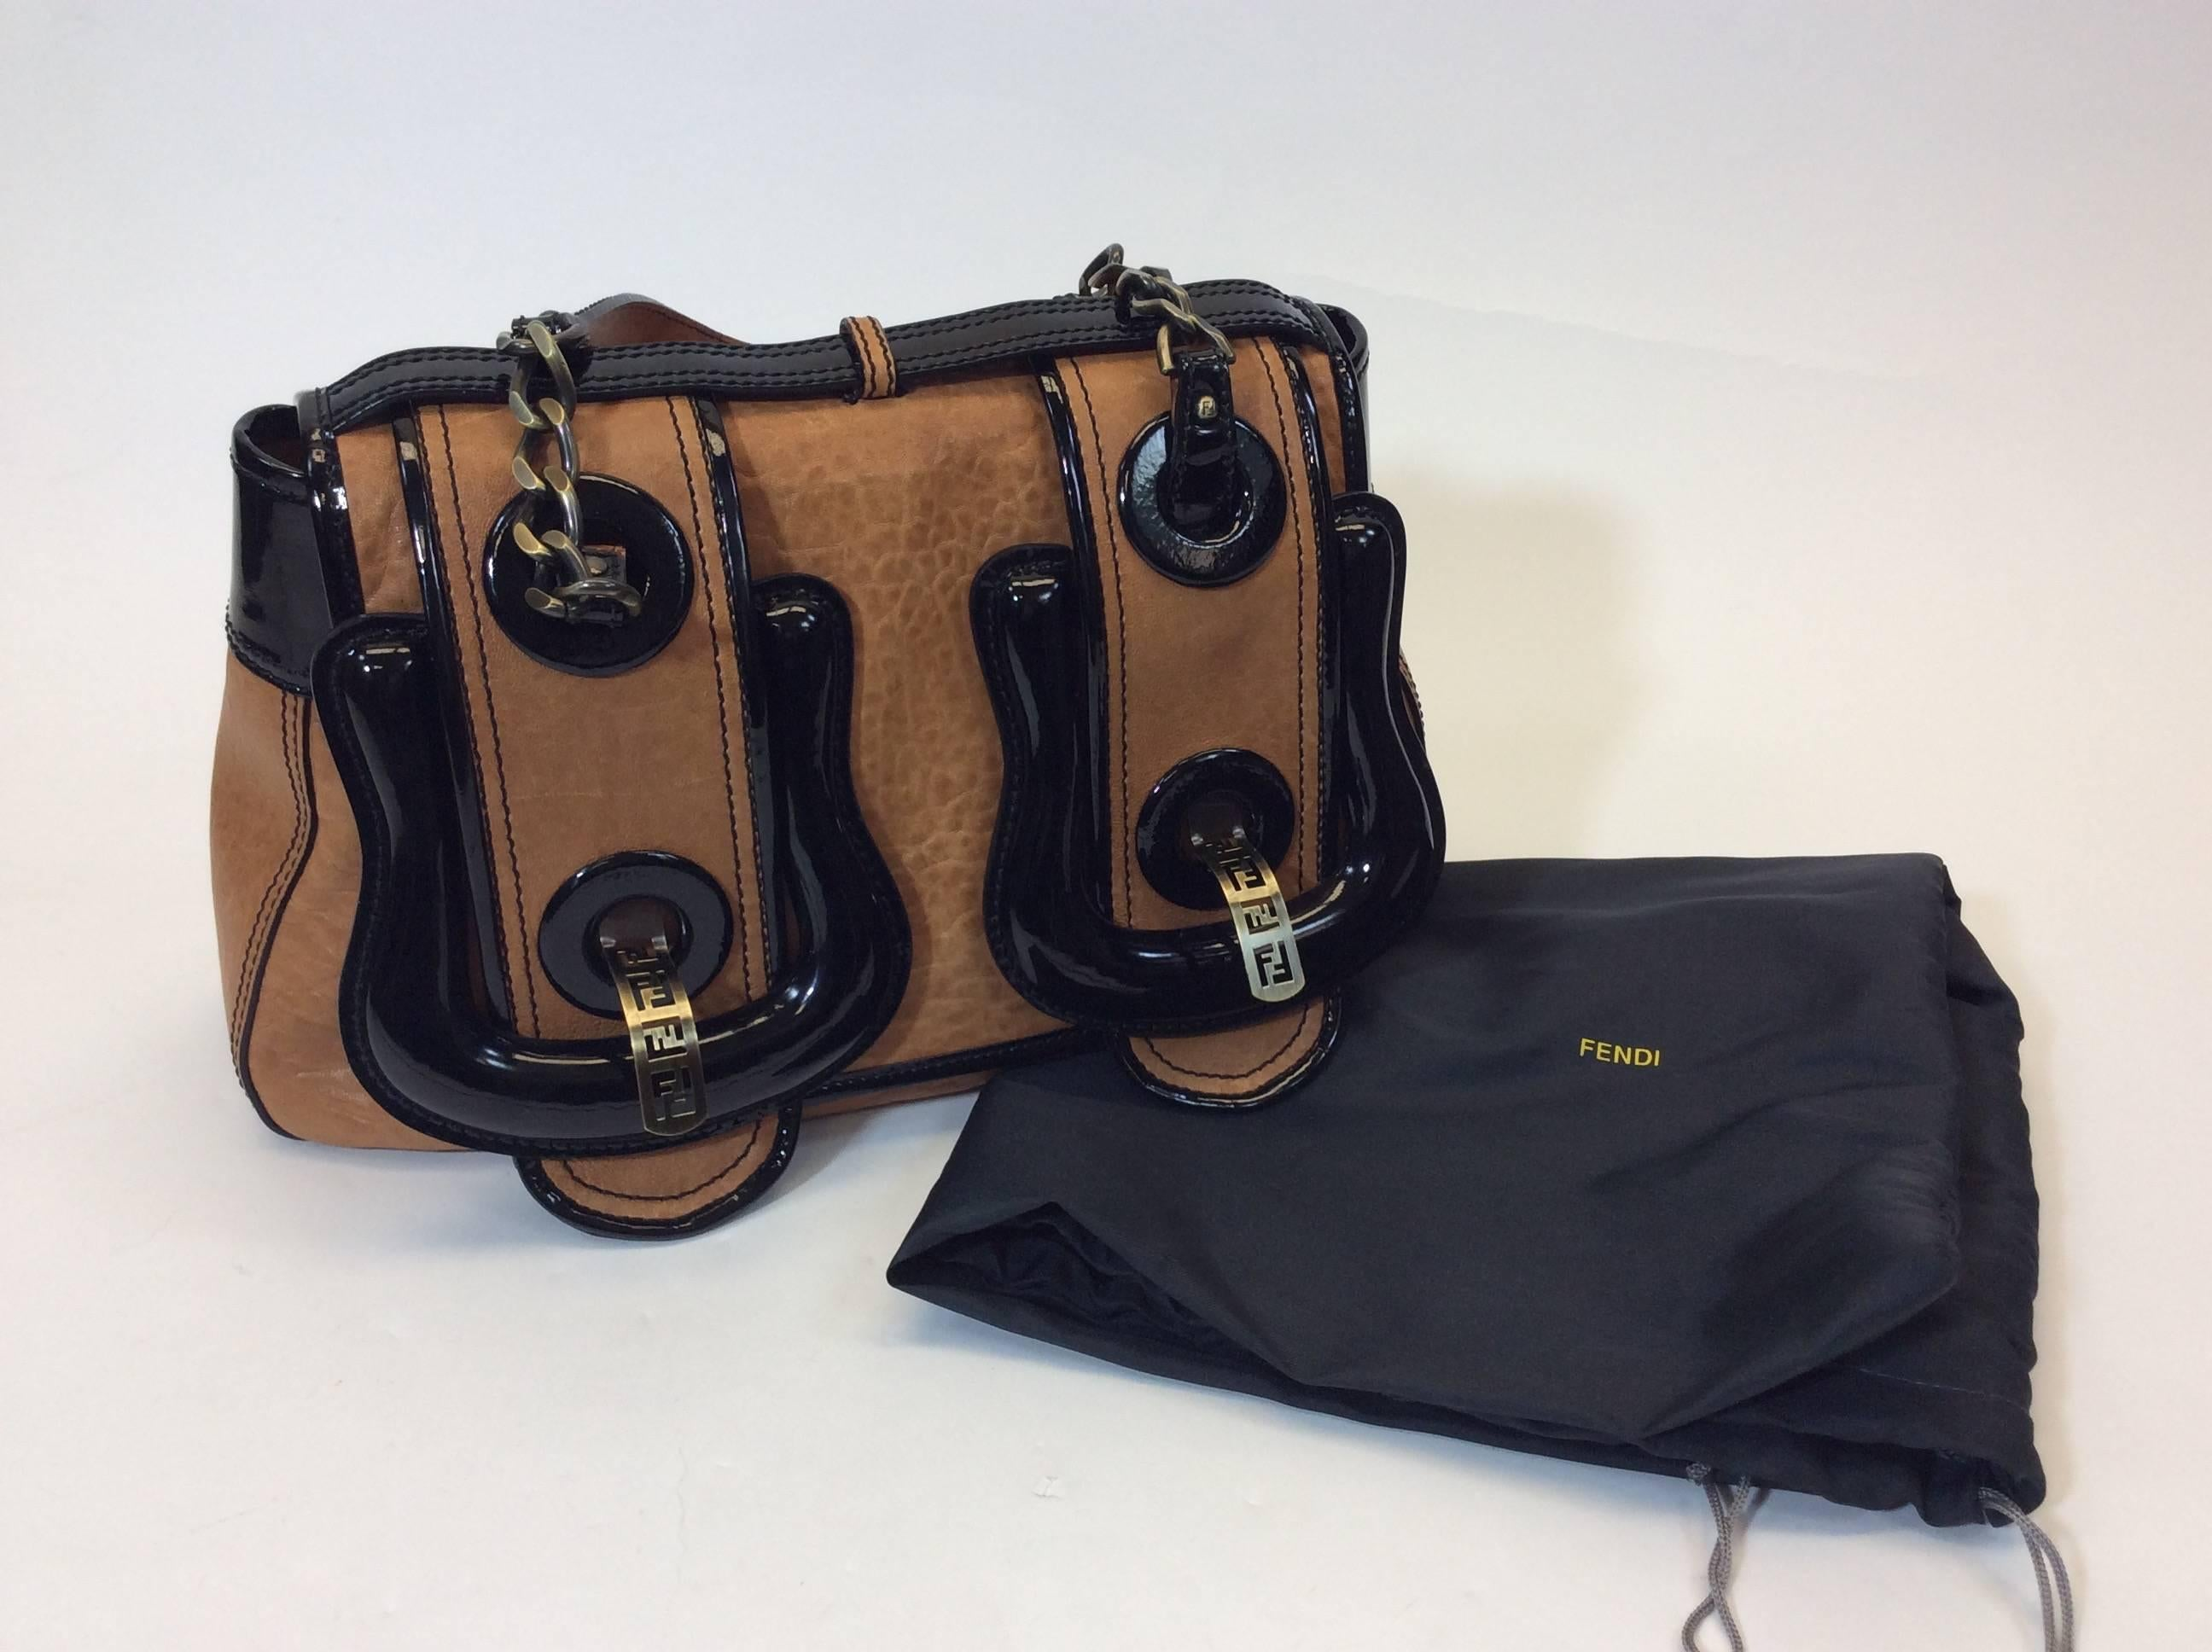 coupon code for fendi black patent and brown leather b buckle bursa  shoulder bag for sale 7c76eeefa9437